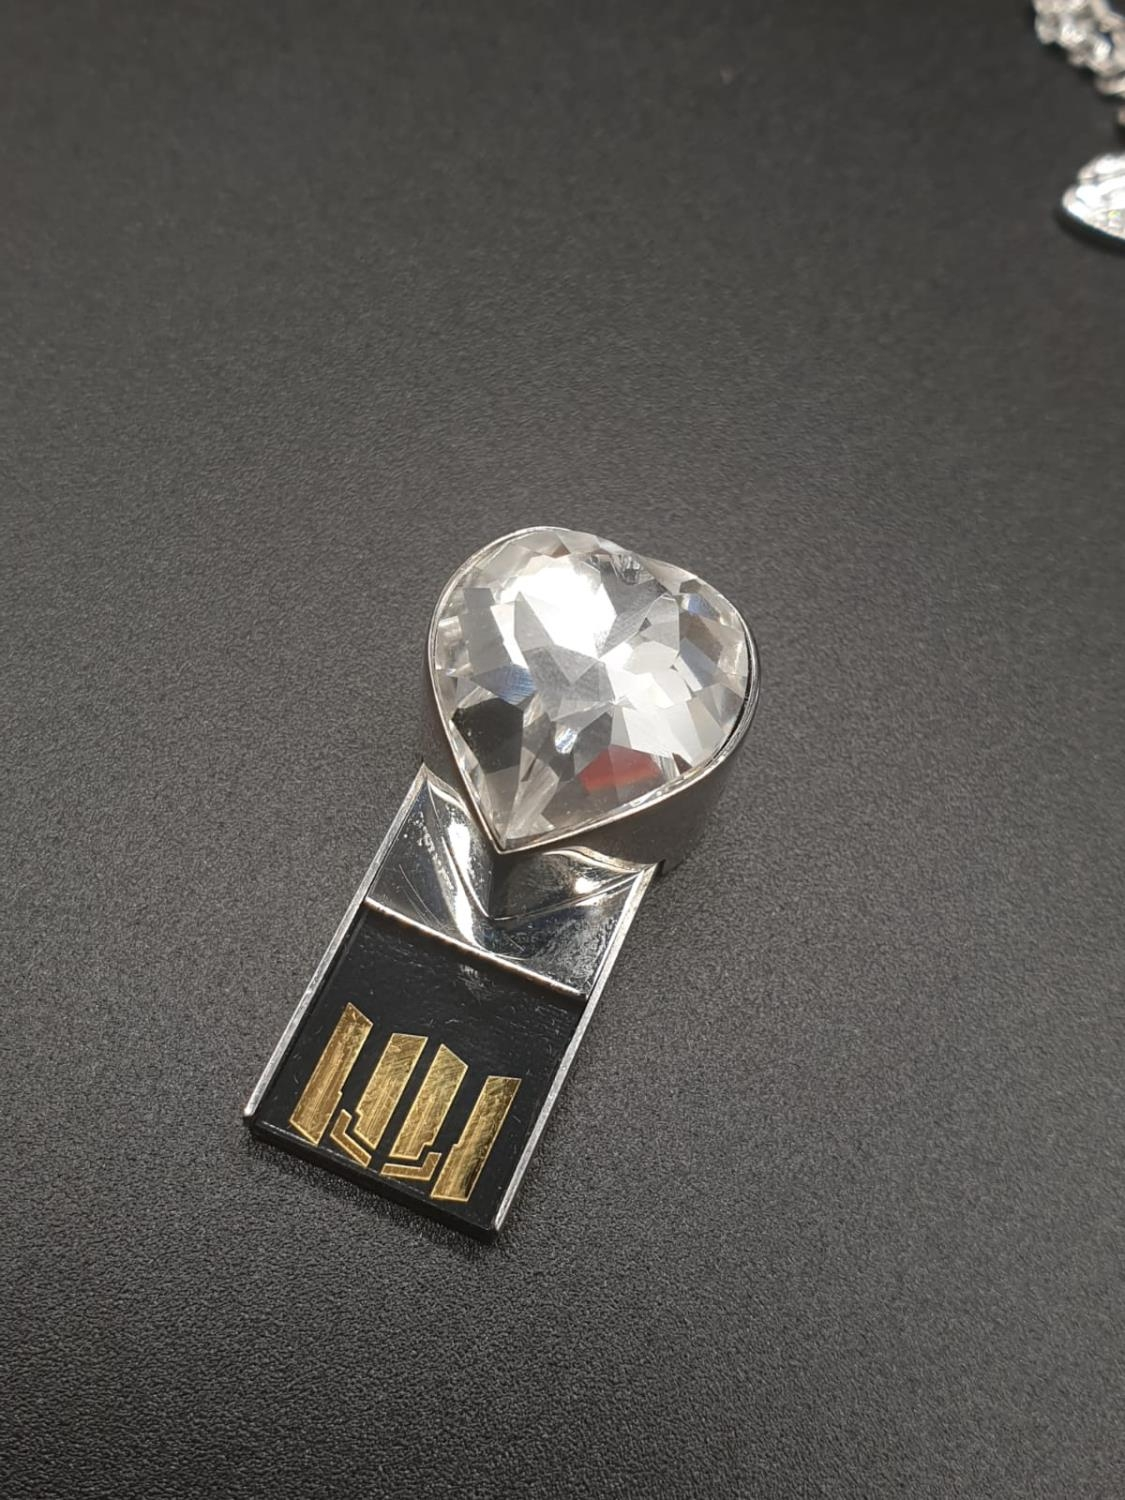 Swarovski Women's Metallic Active Crystal Heart-Shaped Pendant with built-in 8GB USB. 76cm As new, - Image 5 of 10